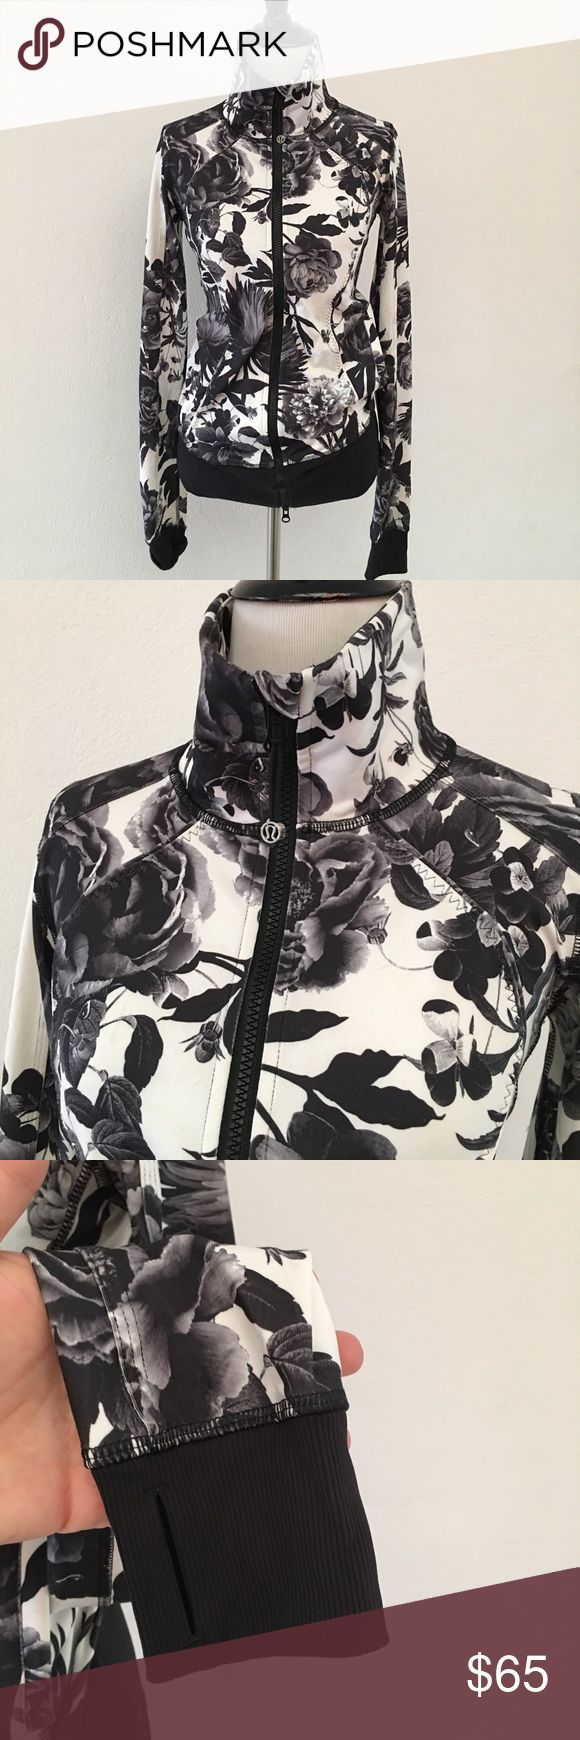 Lululemon Calm & Cozy Brisk Bloom Jacket size 4 Preowned authentic Lululemon Calm & Cozy Brisk Bloom Jacket size 4. Has thumbholes. Please look at pictures for better reference. Happy shopping! lululemon athletica Jackets & Coats